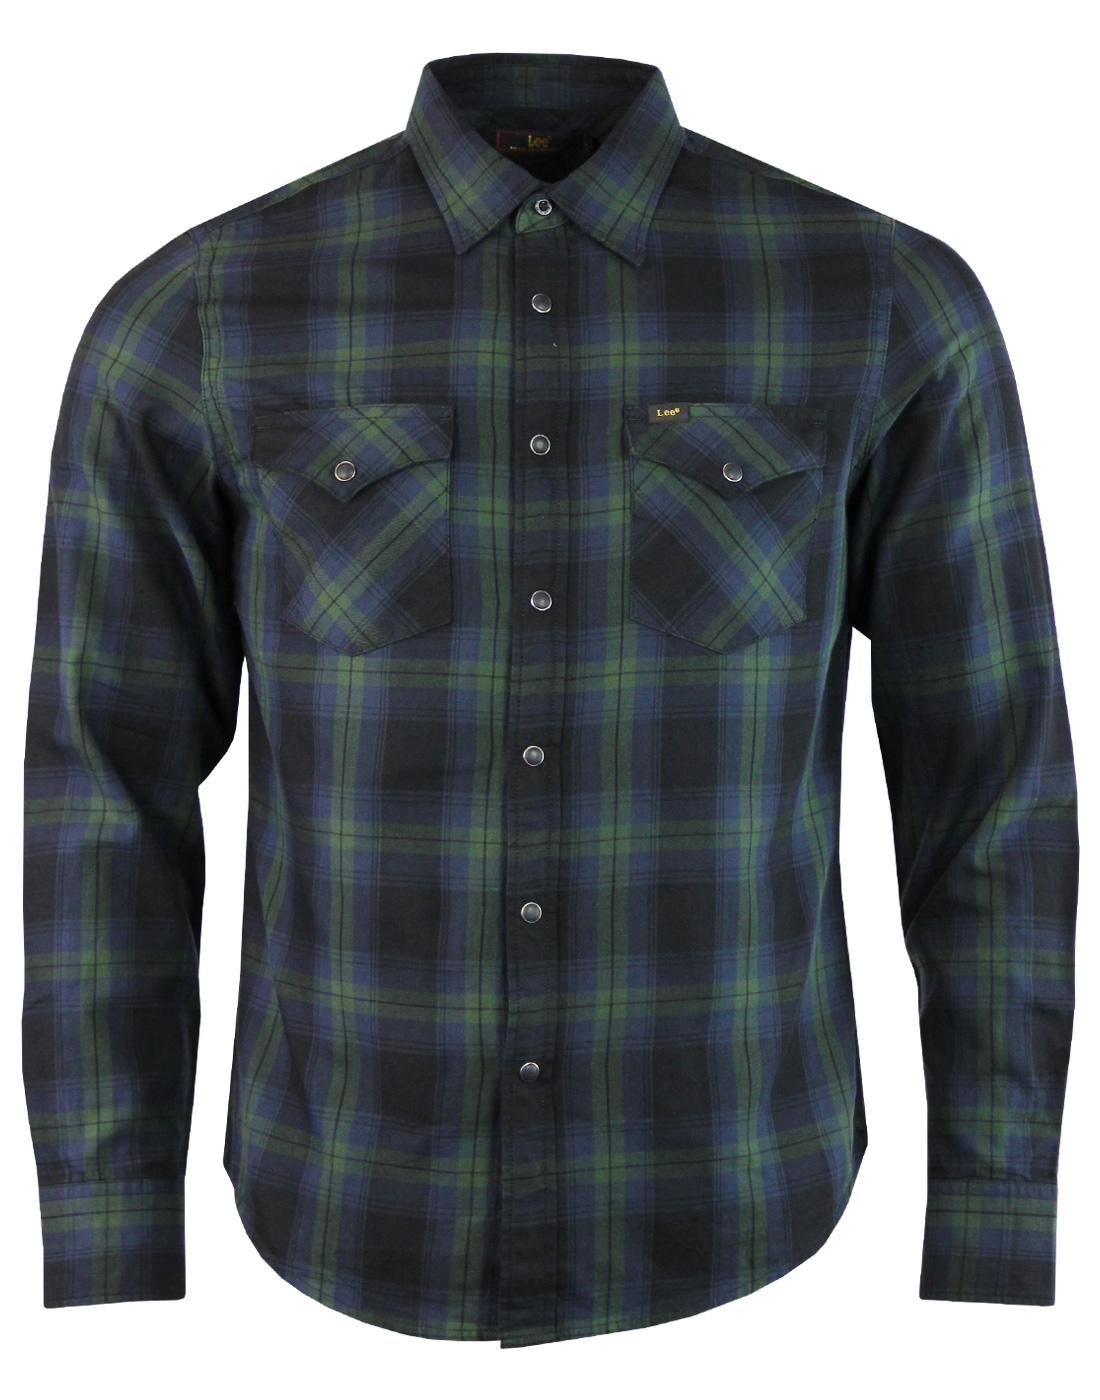 LEE Men's Retro Mod Tartan Check L/S Western Shirt